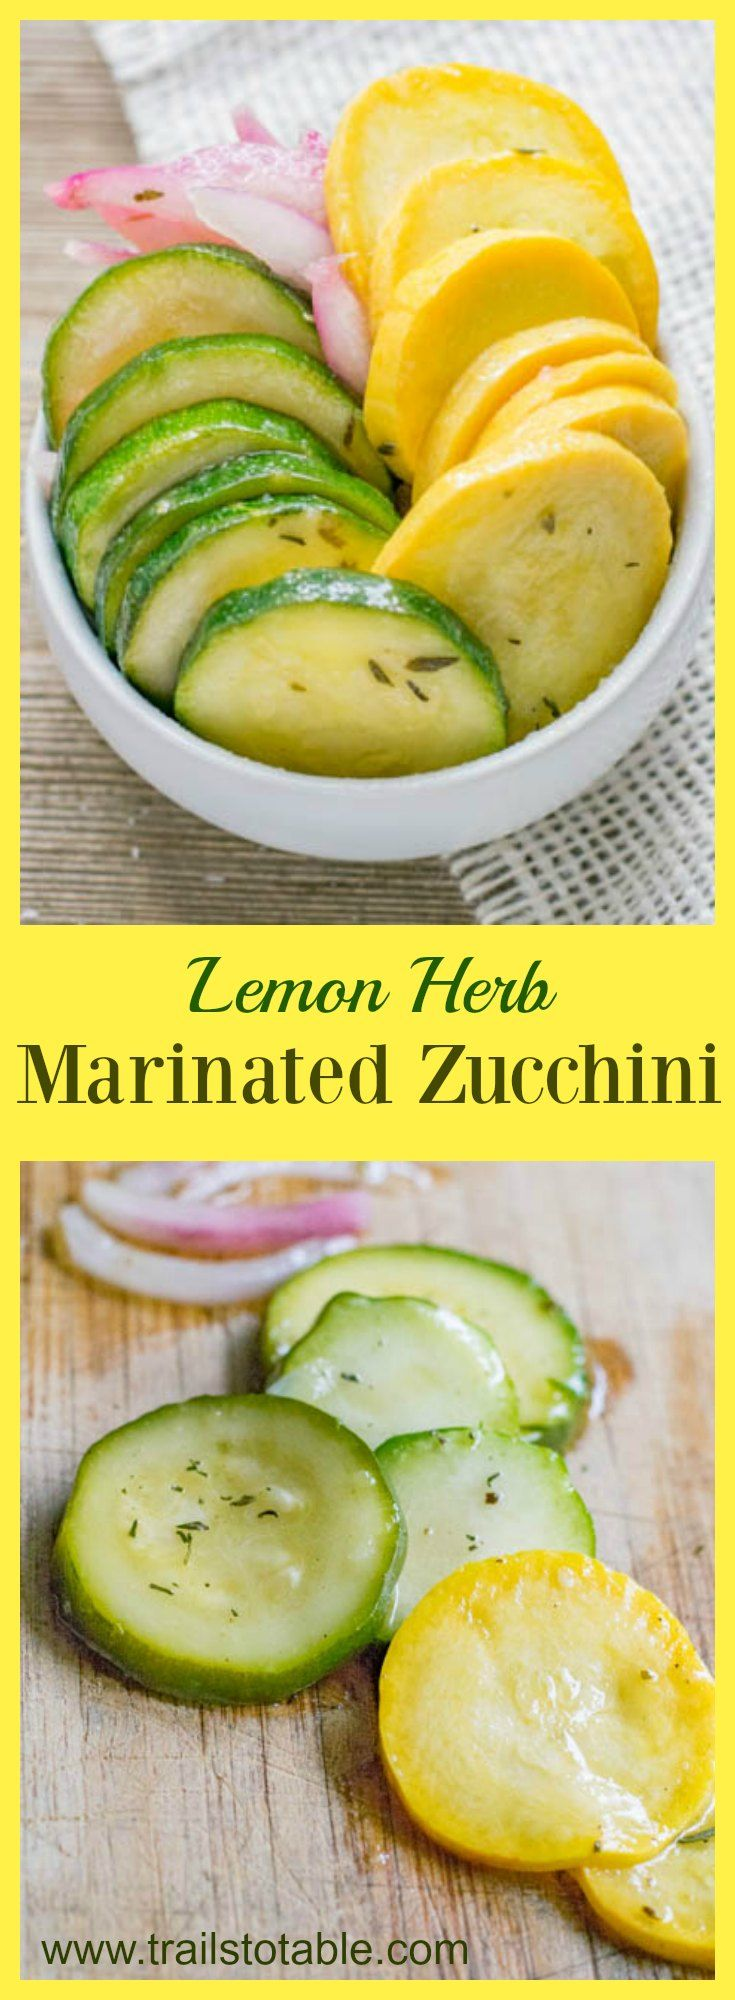 Lemon Herb Marinated Zucchini. Here is a great way to use excess zucchini and squash in the summer! Keep the marinated vegetables in a jar in the fridge, and use like refrigerator pickles! So tasty!